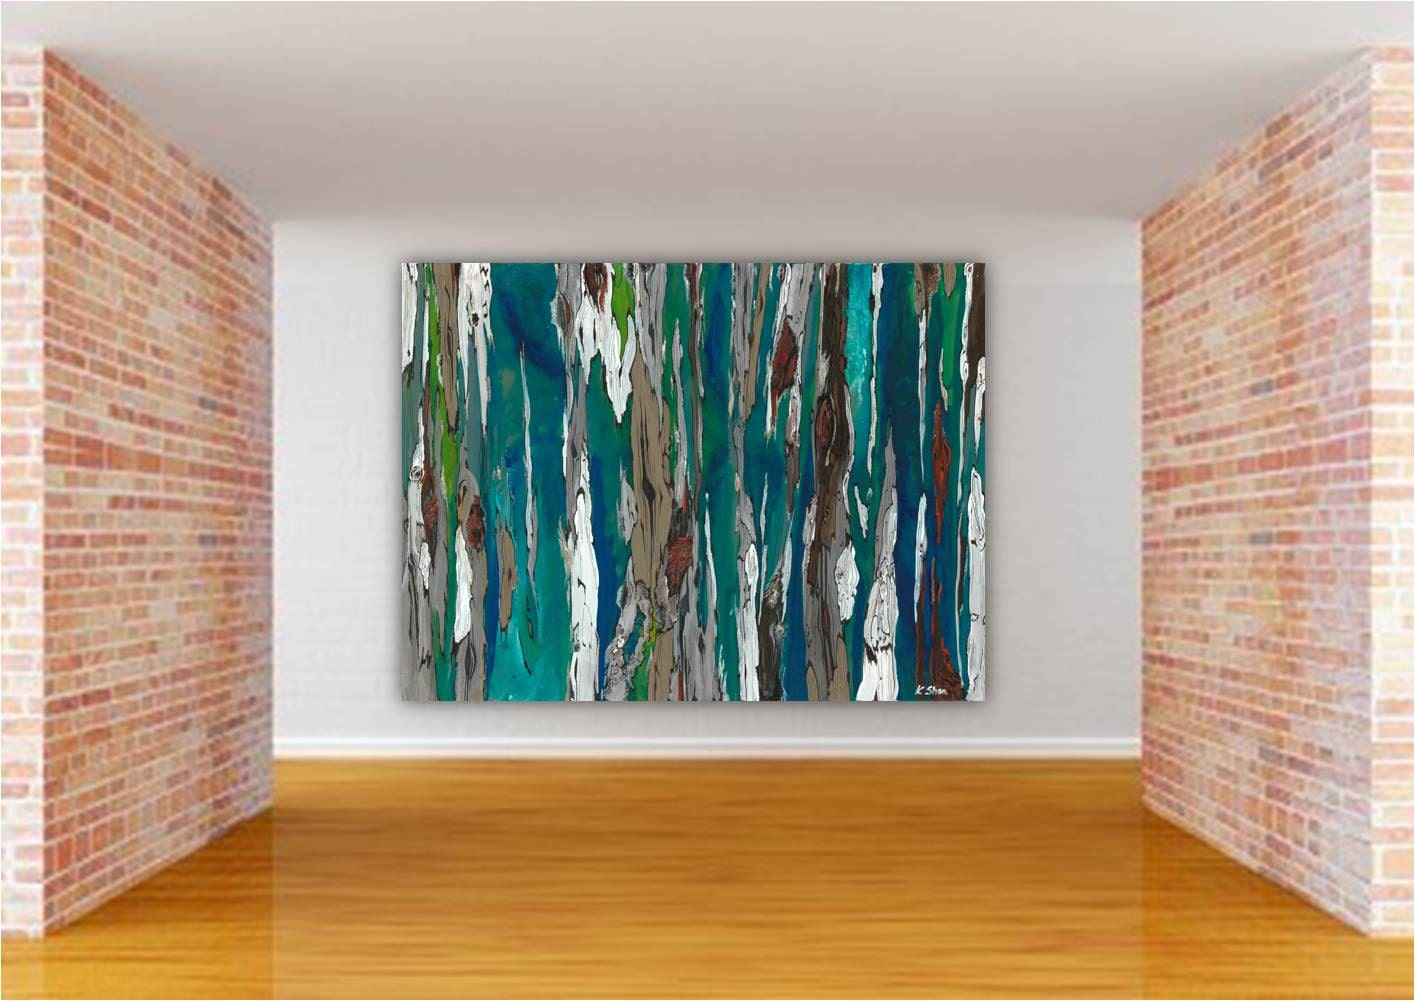 VERY LARGE Oversized Teal Wall Art Canvas Print Painting Of Trees